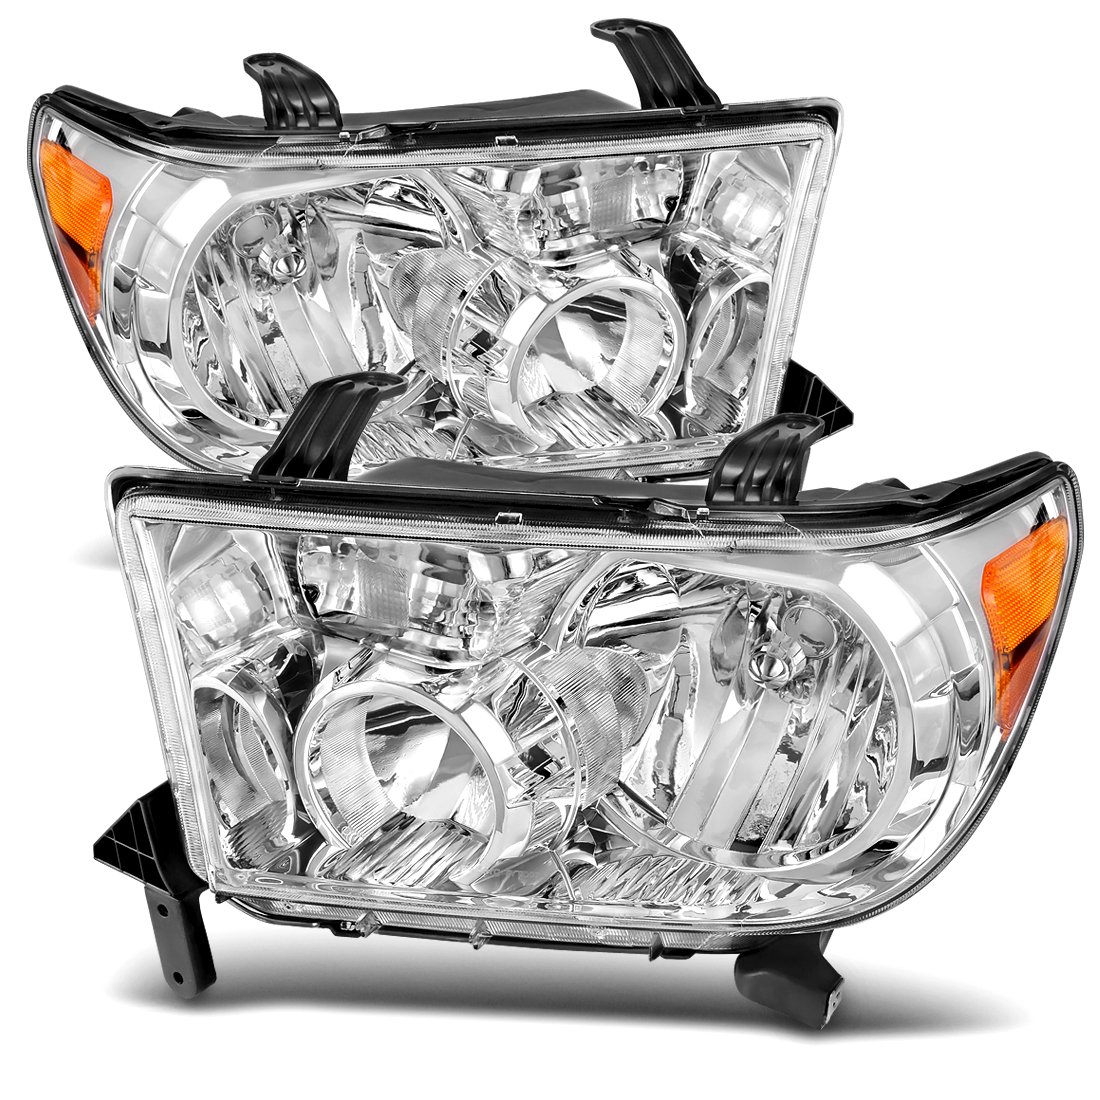 For Toyota Tundra 2007-2011 Headlamp Headlight Assembly Chrome Housing Amber Reflector Clear Lens (Driver and Passenger Side) AUTOSAVER88